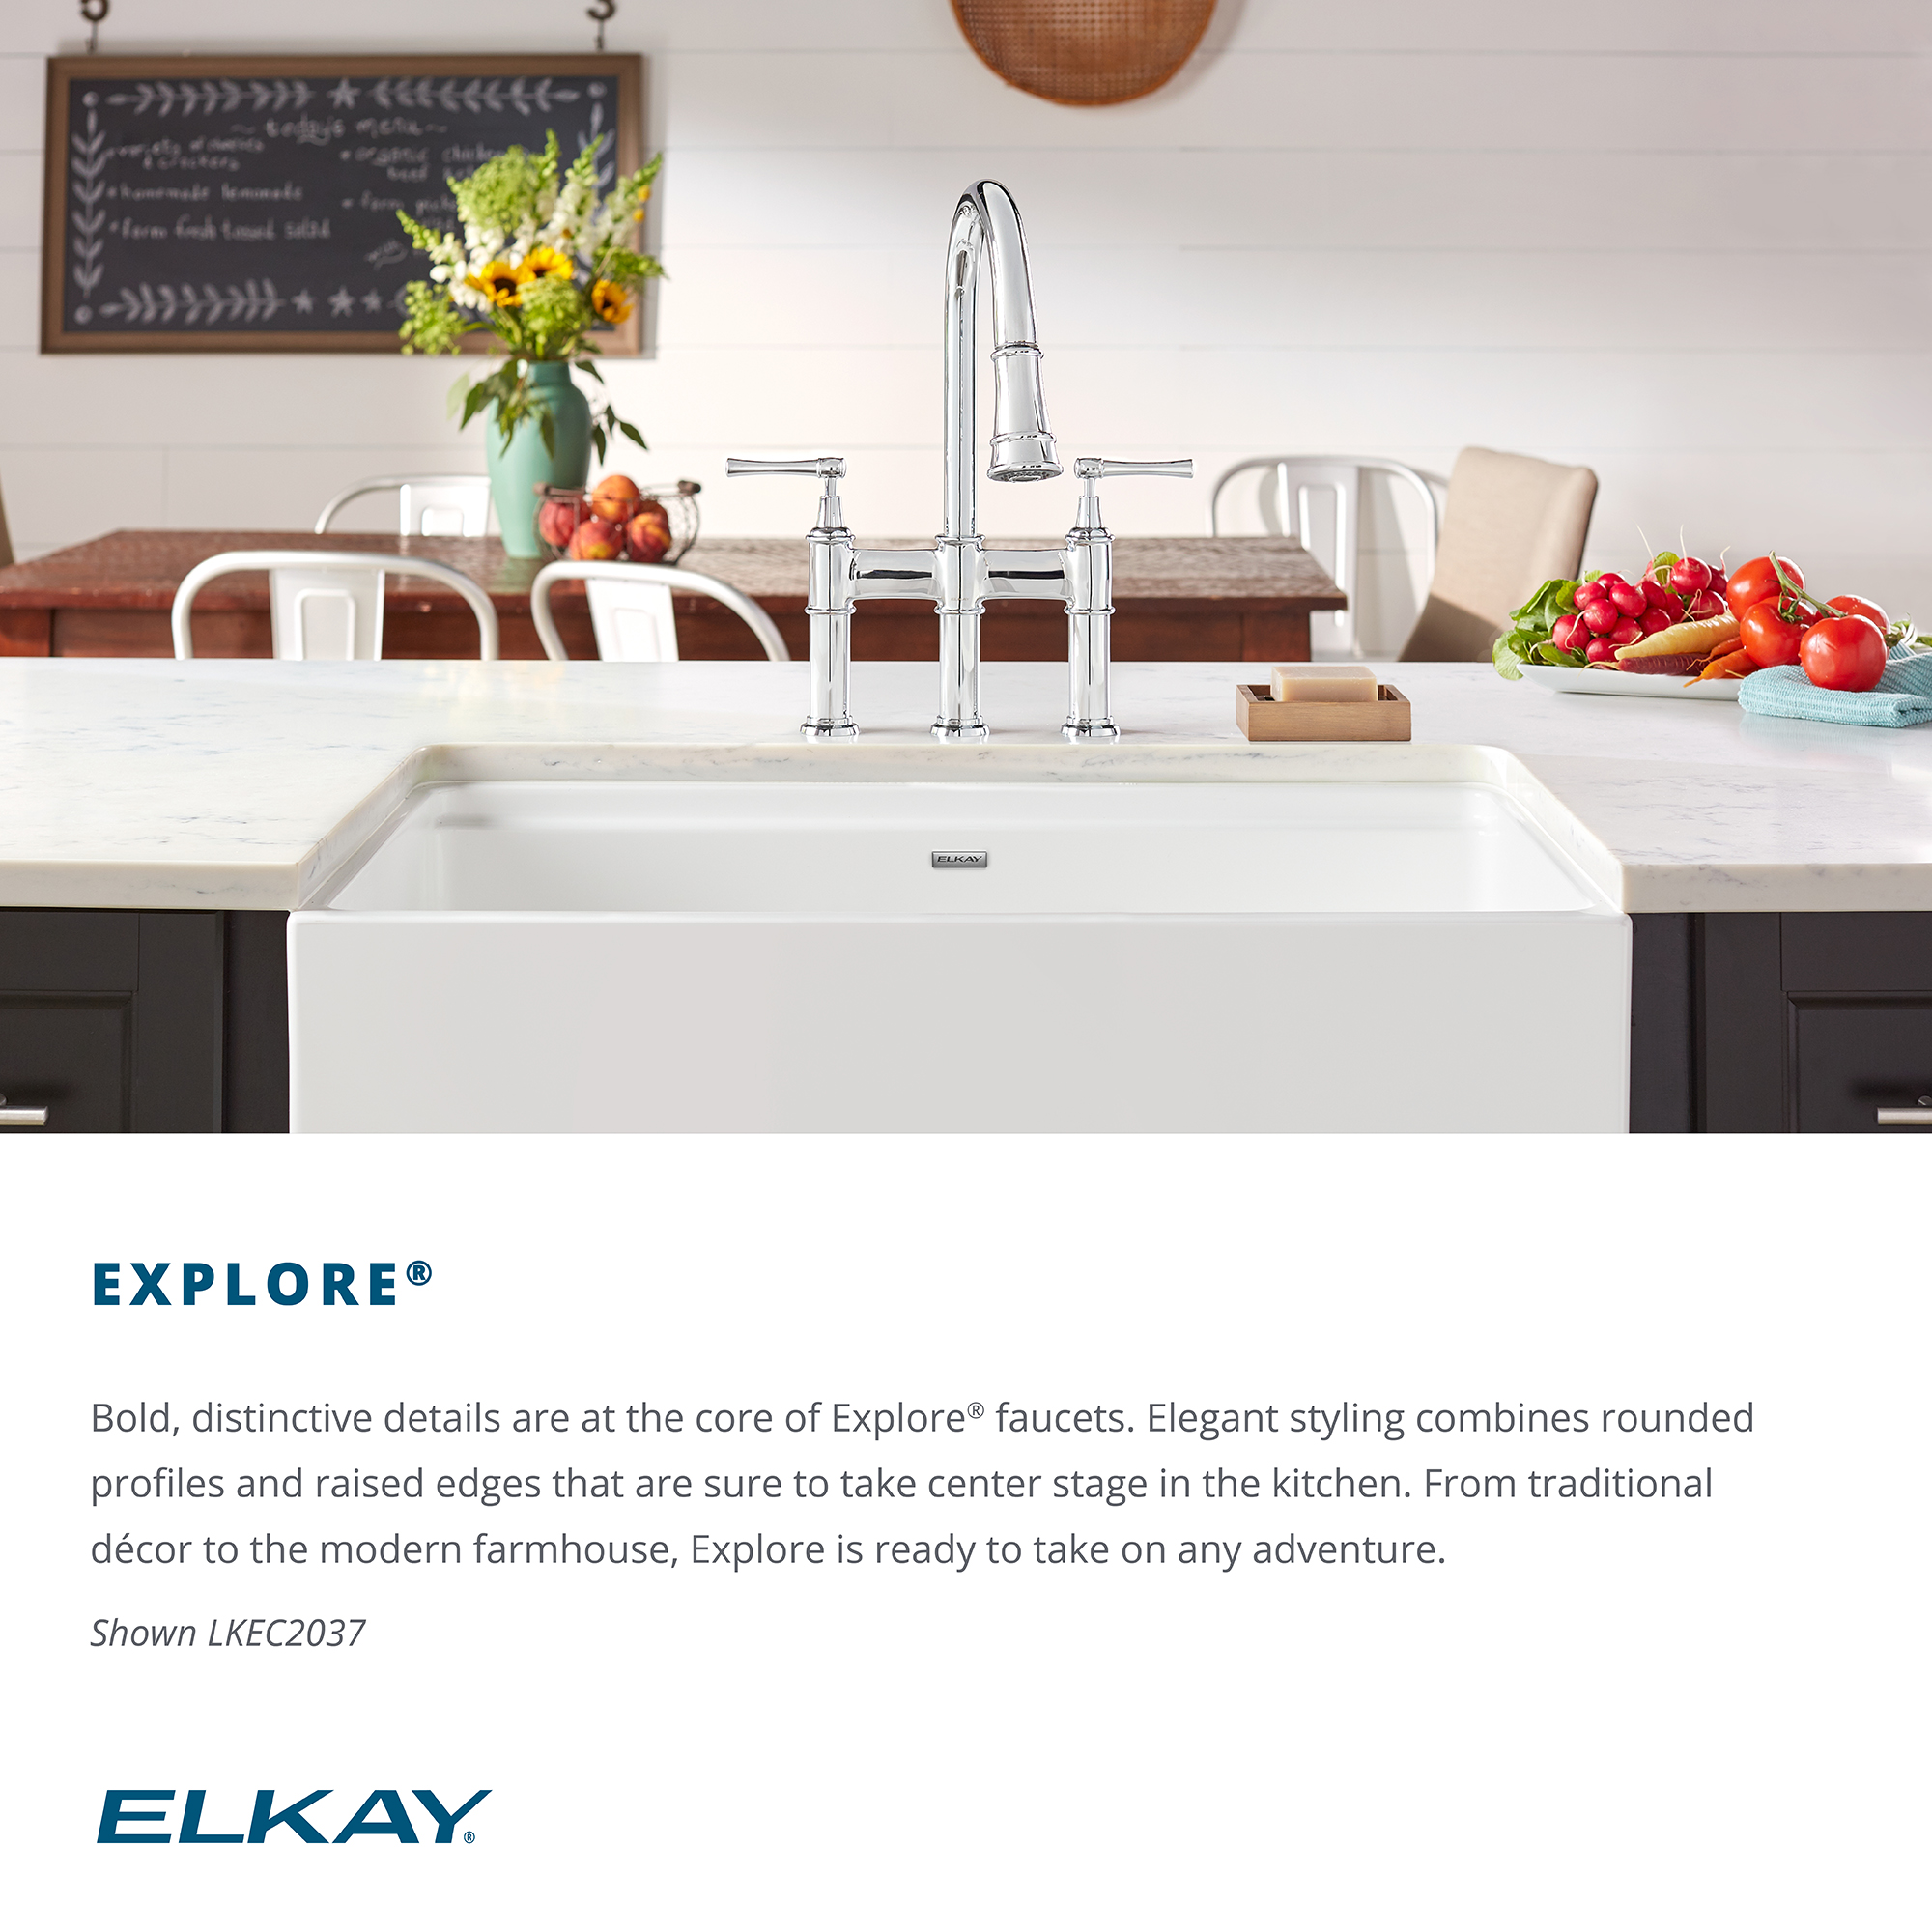 Elkay LKEC1041NK Single Hole Kitchen Faucet with Pull-out Spray and Lever Handle Brushed Nickel